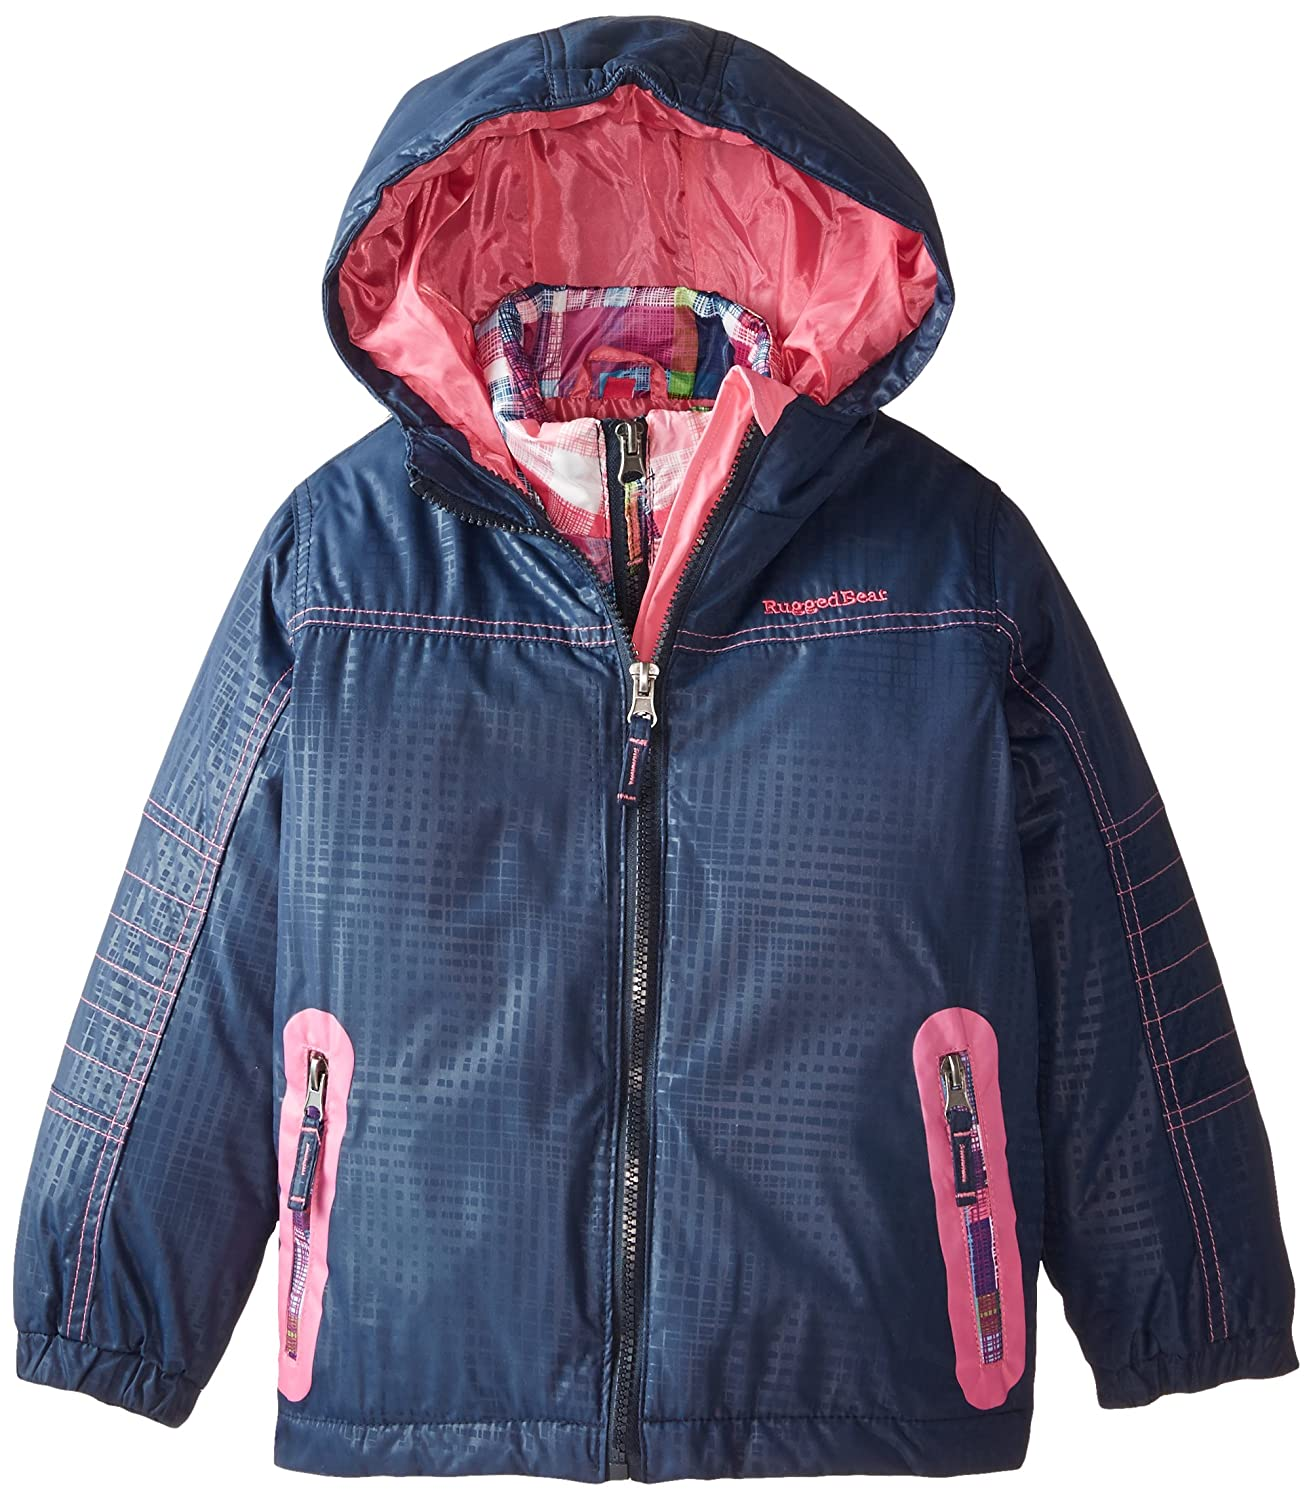 Rugged Bear Girls' Systems Coat with Plaid Jacket Rugged Bear Girls 2-6x RG84000